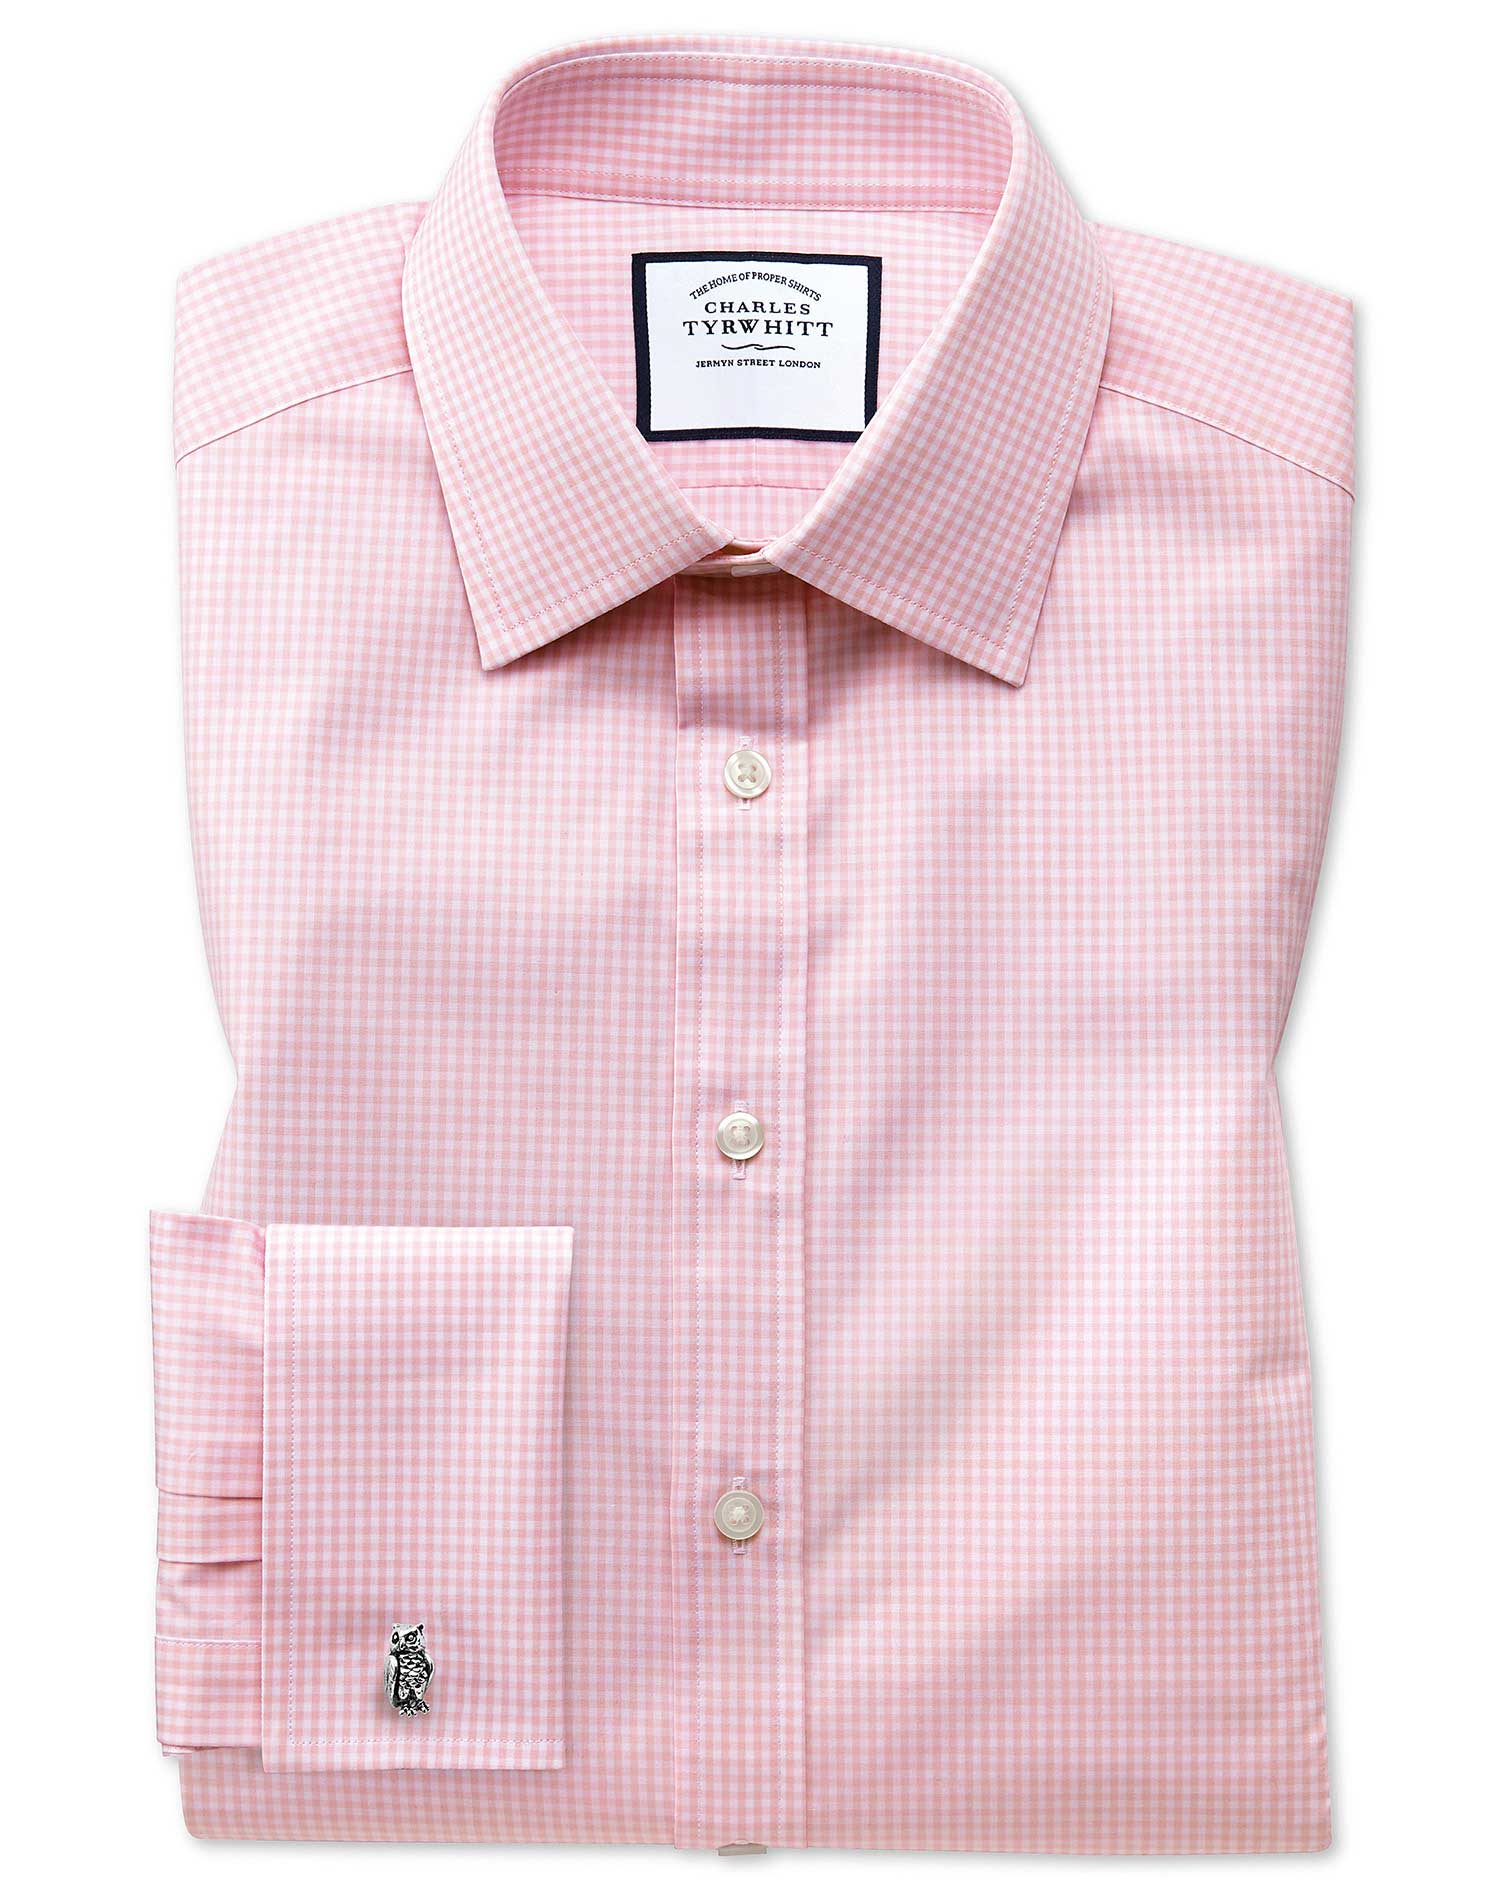 Slim Fit Small Gingham Light Pink Cotton Formal Shirt Double Cuff Size 17/36 by Charles Tyrwhitt